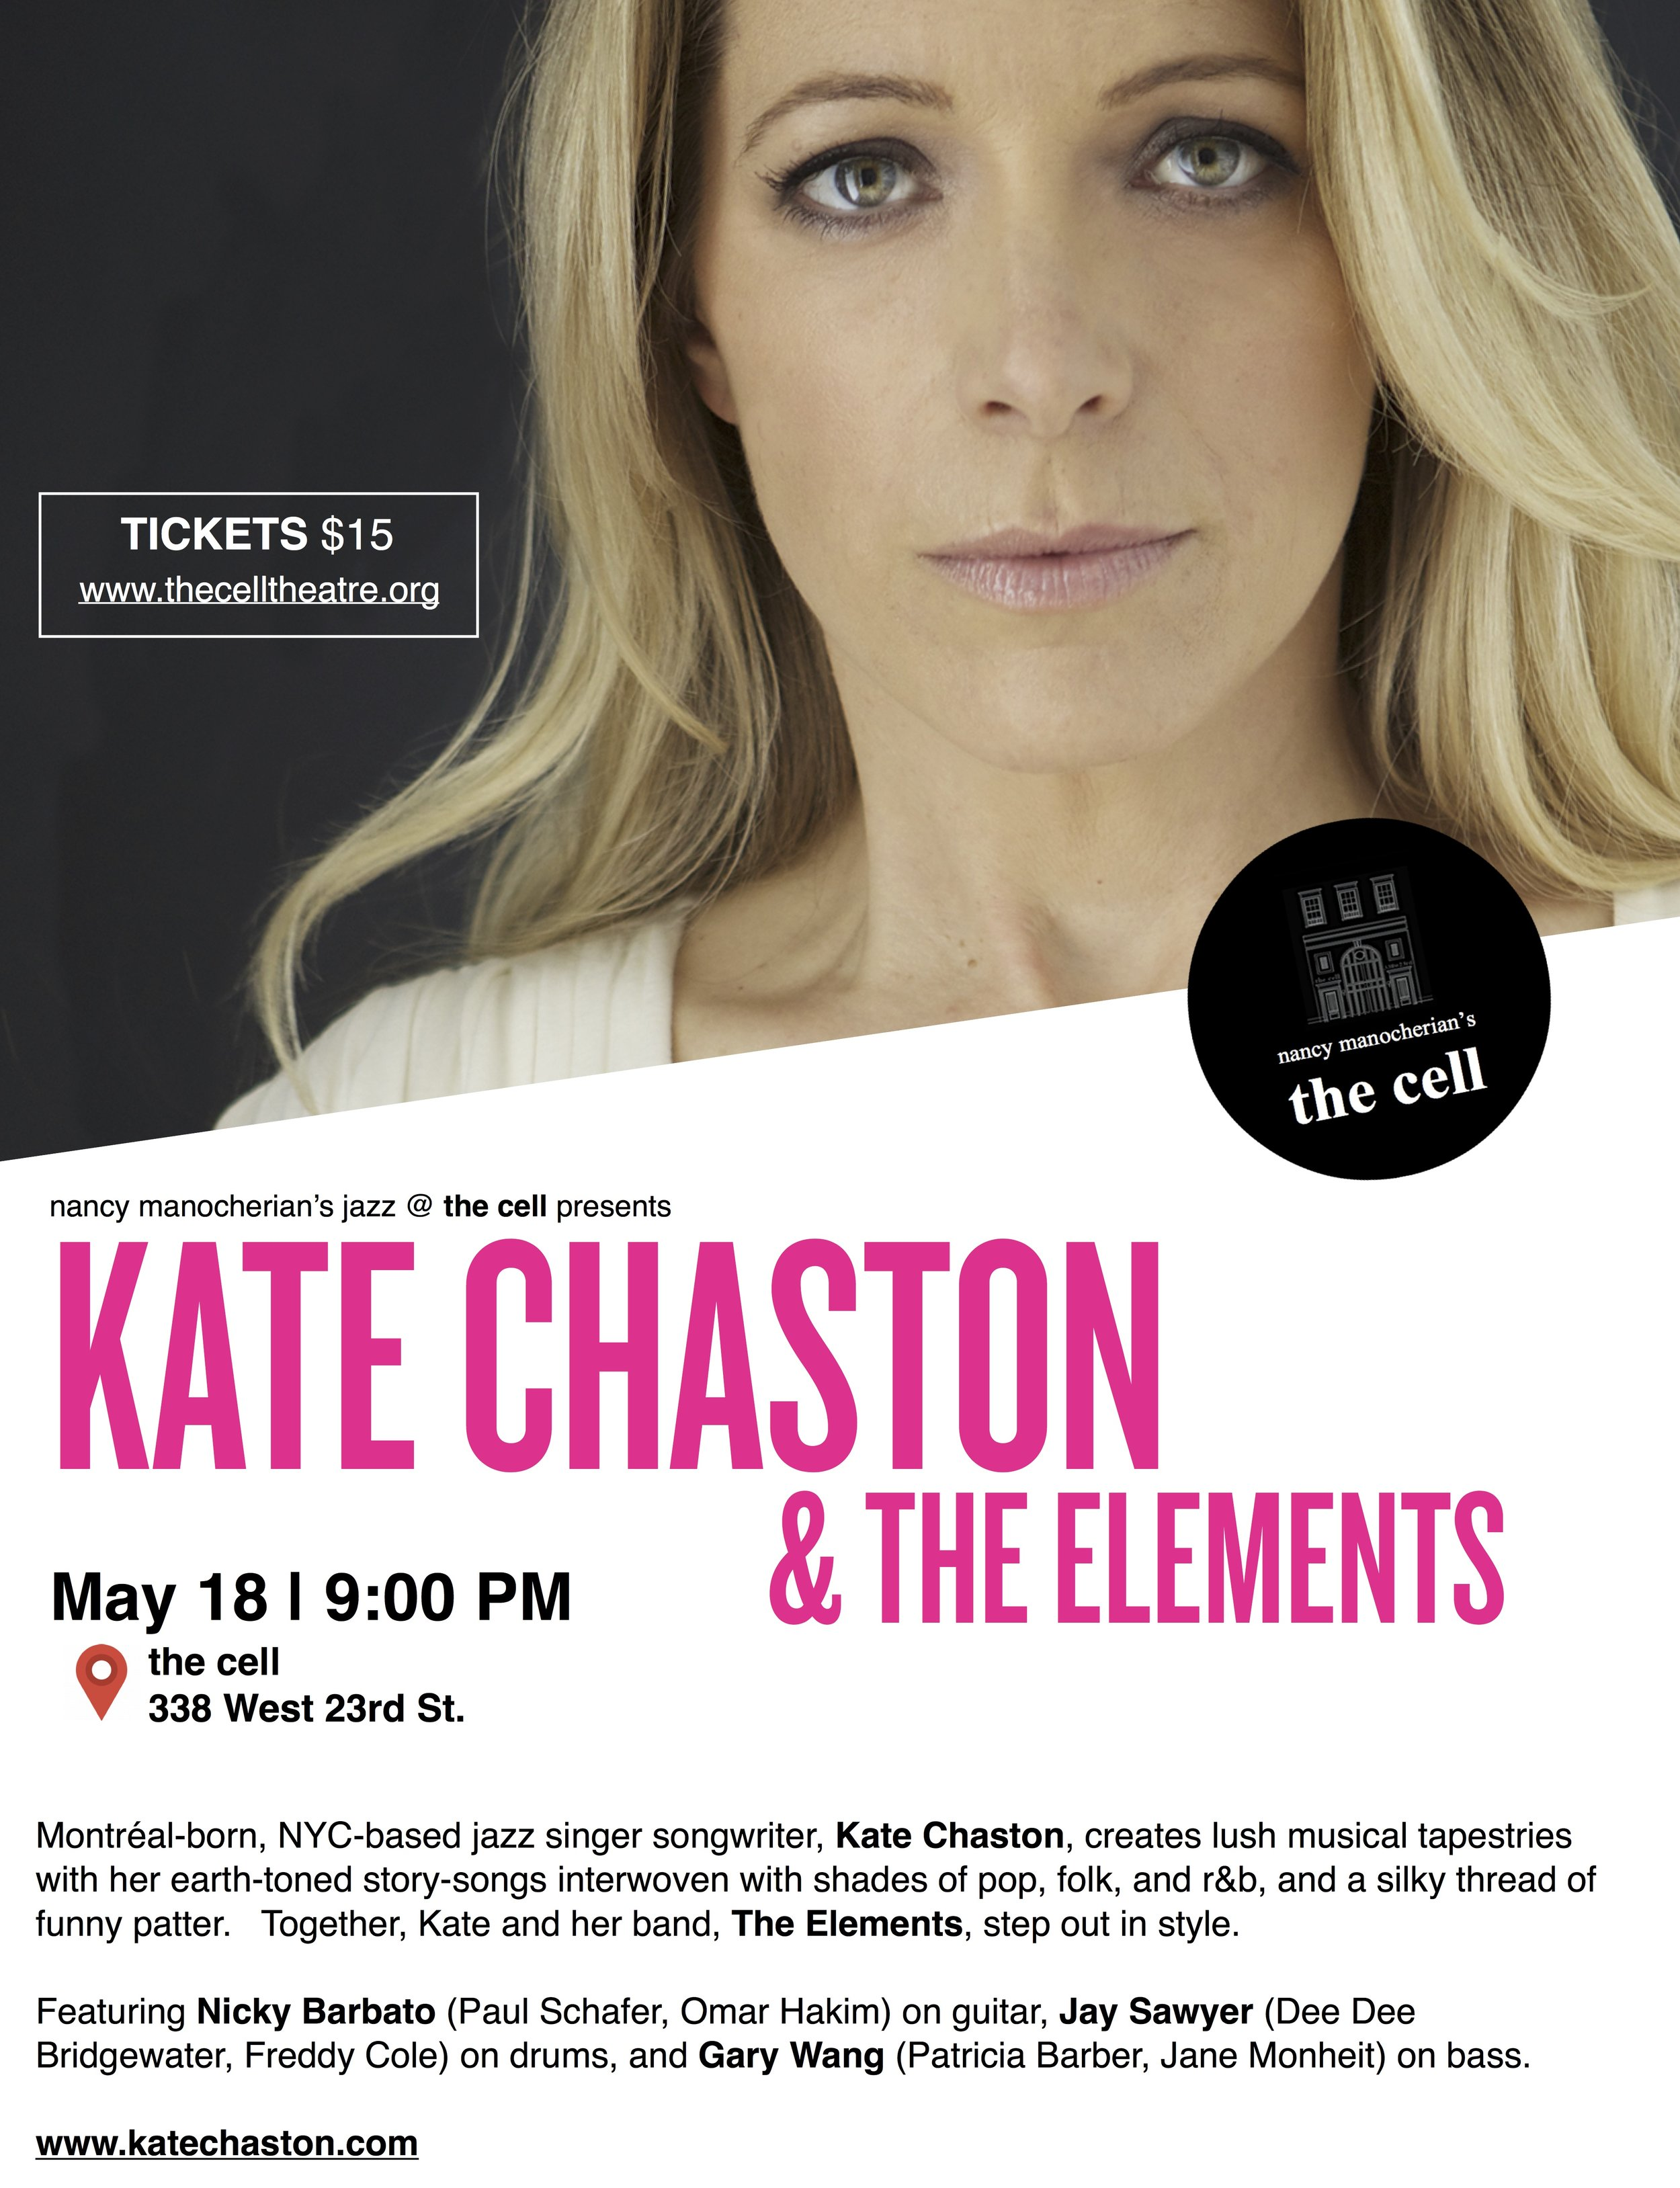 Kate chaston and the elements.jpg